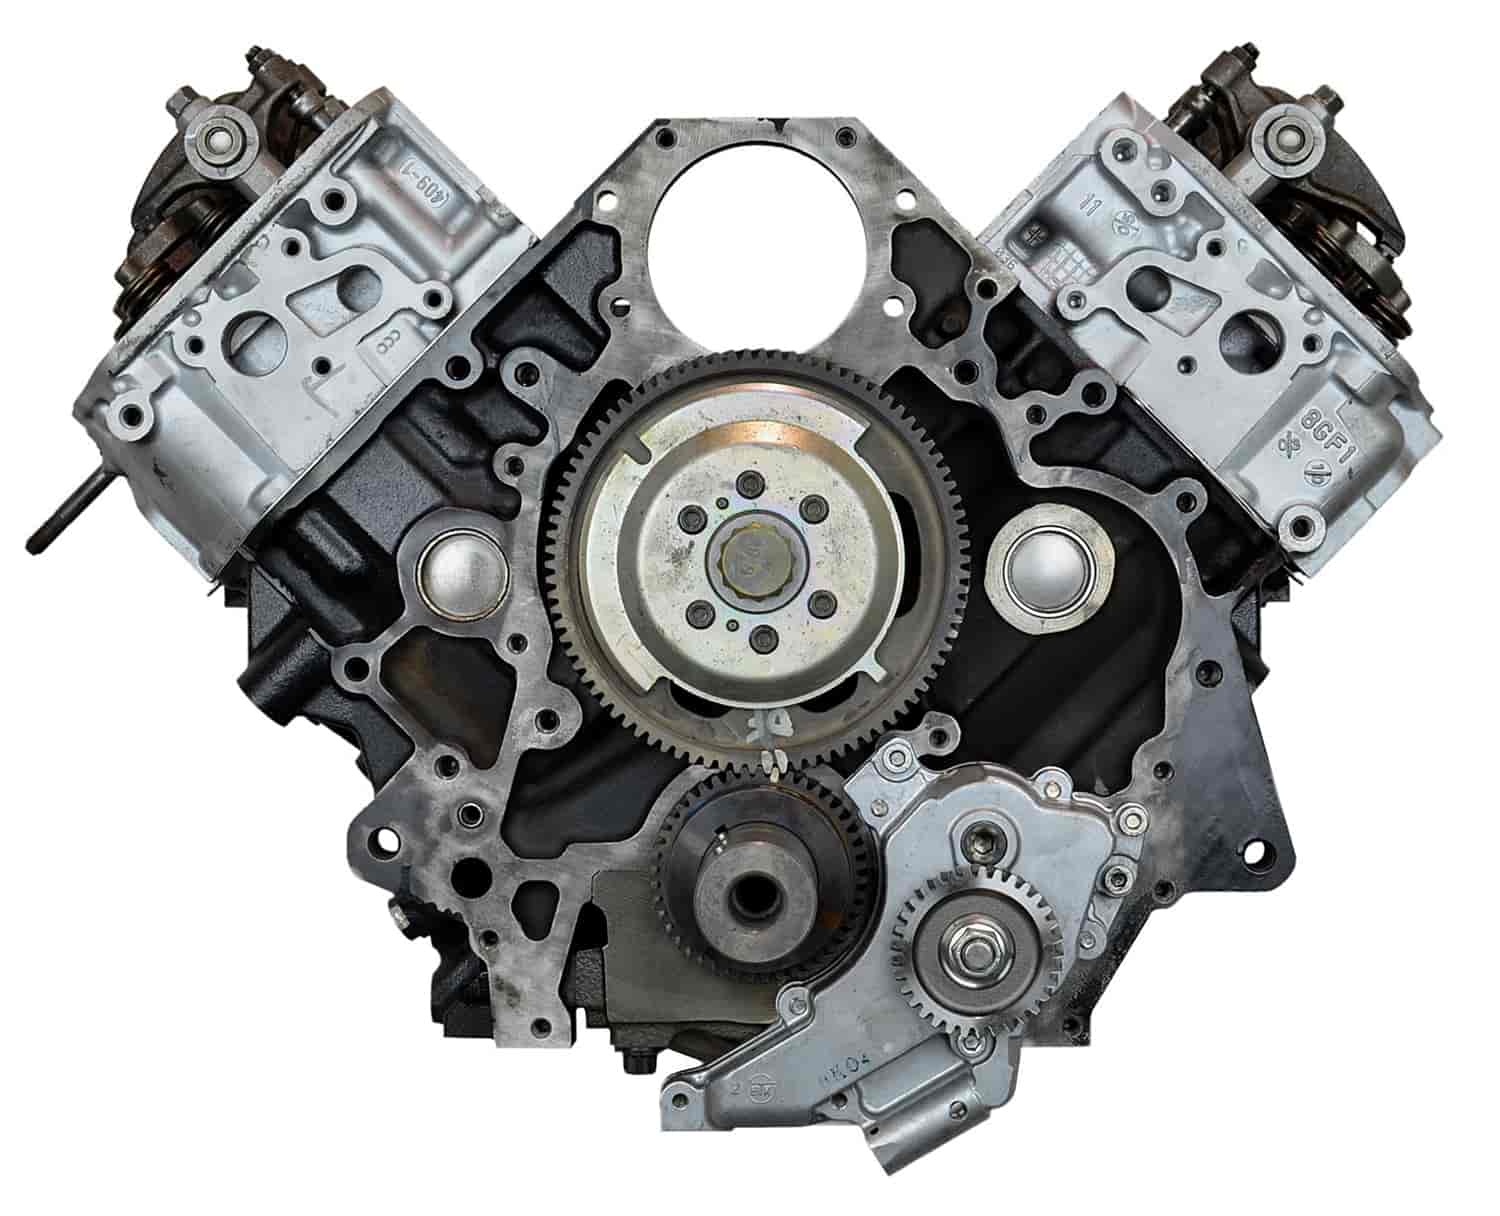 Atk Engines Dcfm2 Remanufactured Crate Engine For 2003 2004 Chevy